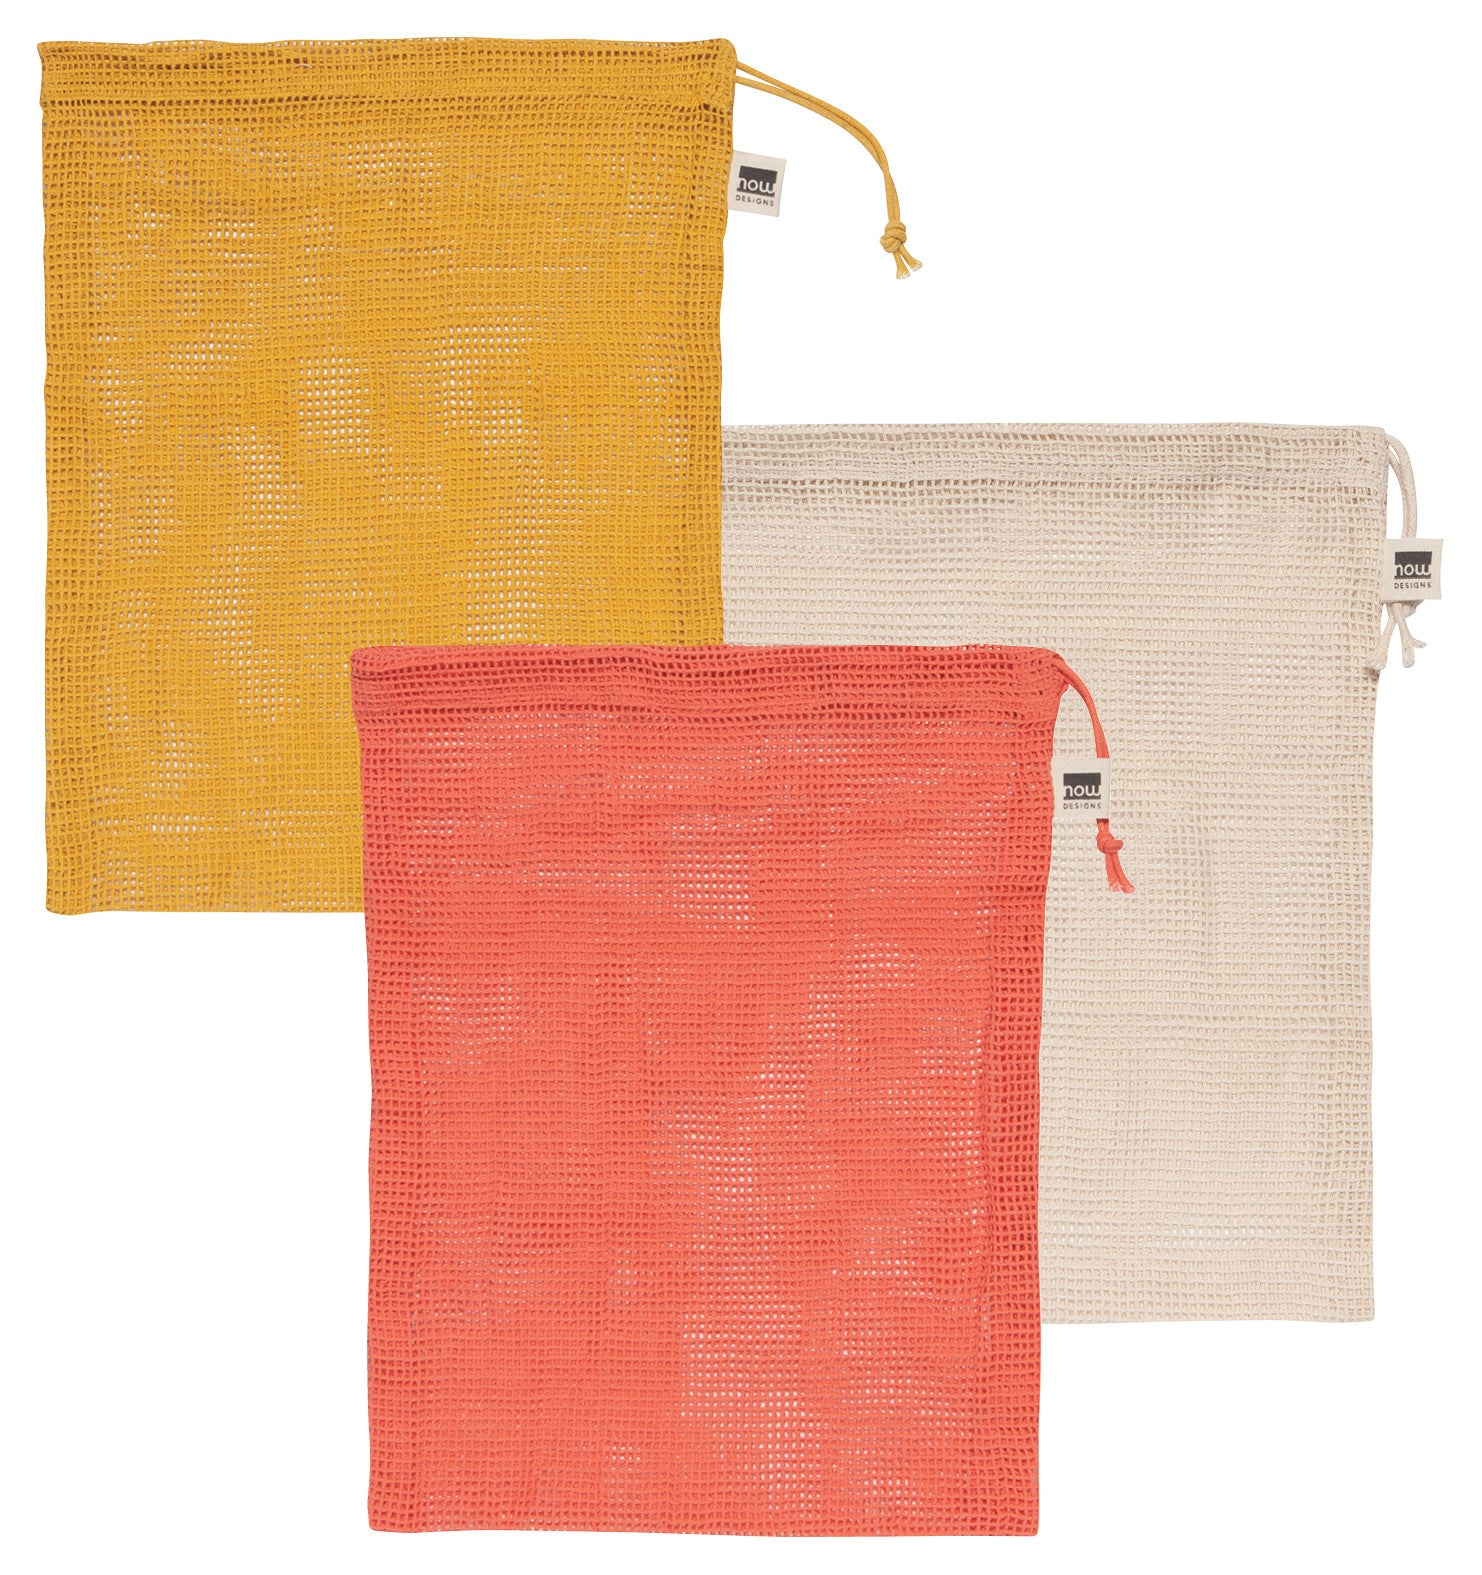 Save-It Le Marche Produce Bags - Set of 3 Corals